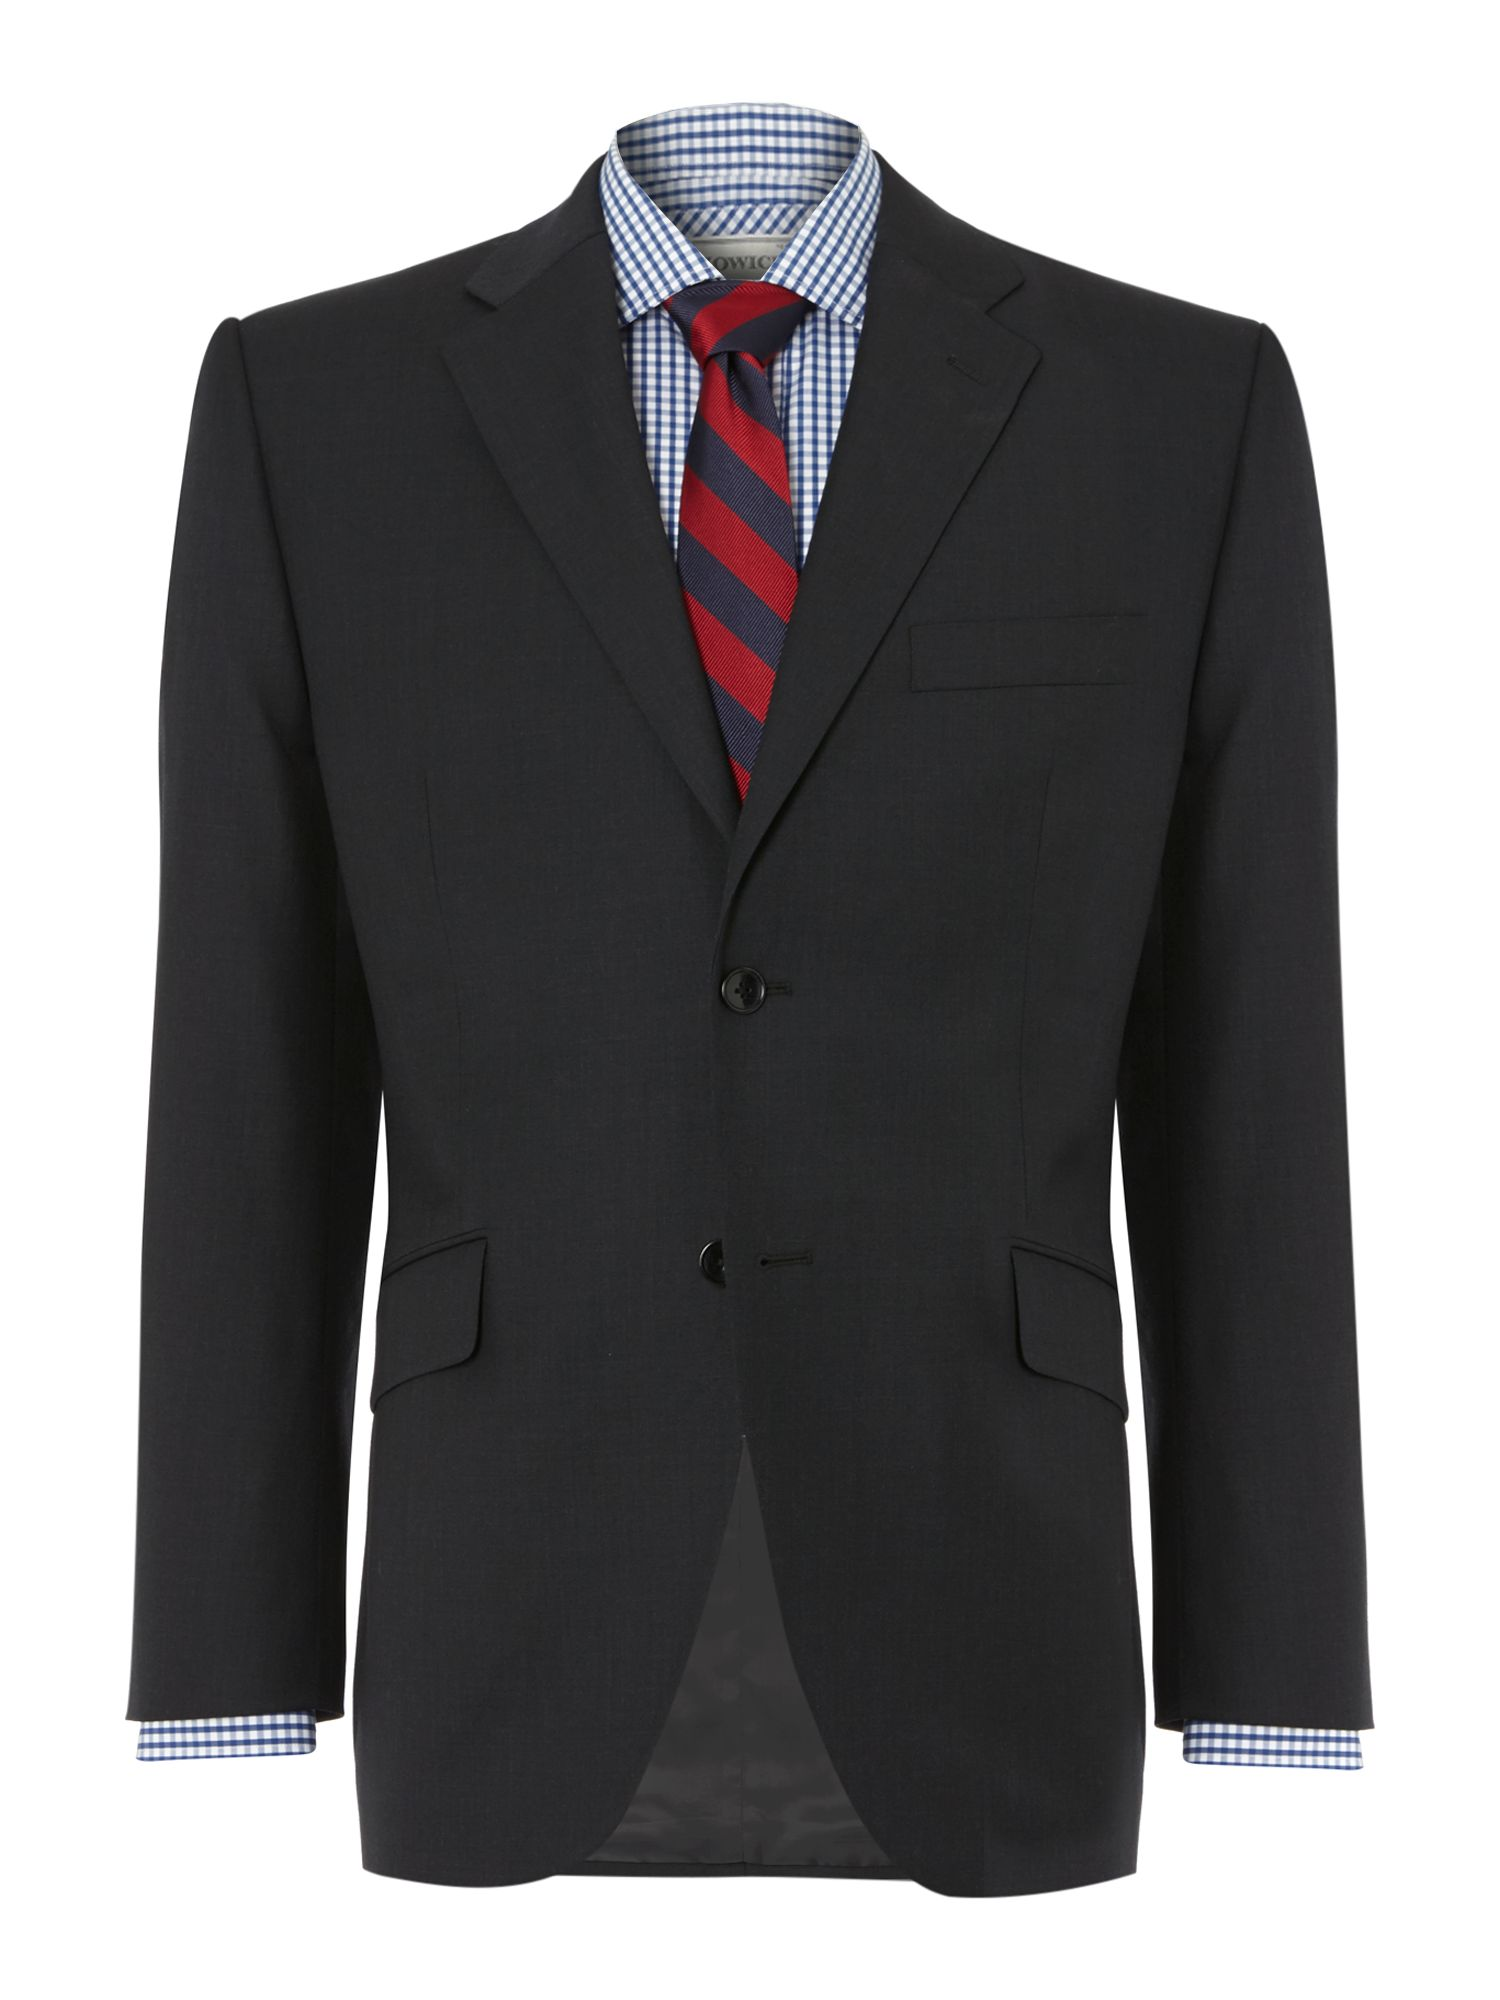 Cambridge Nested Suit